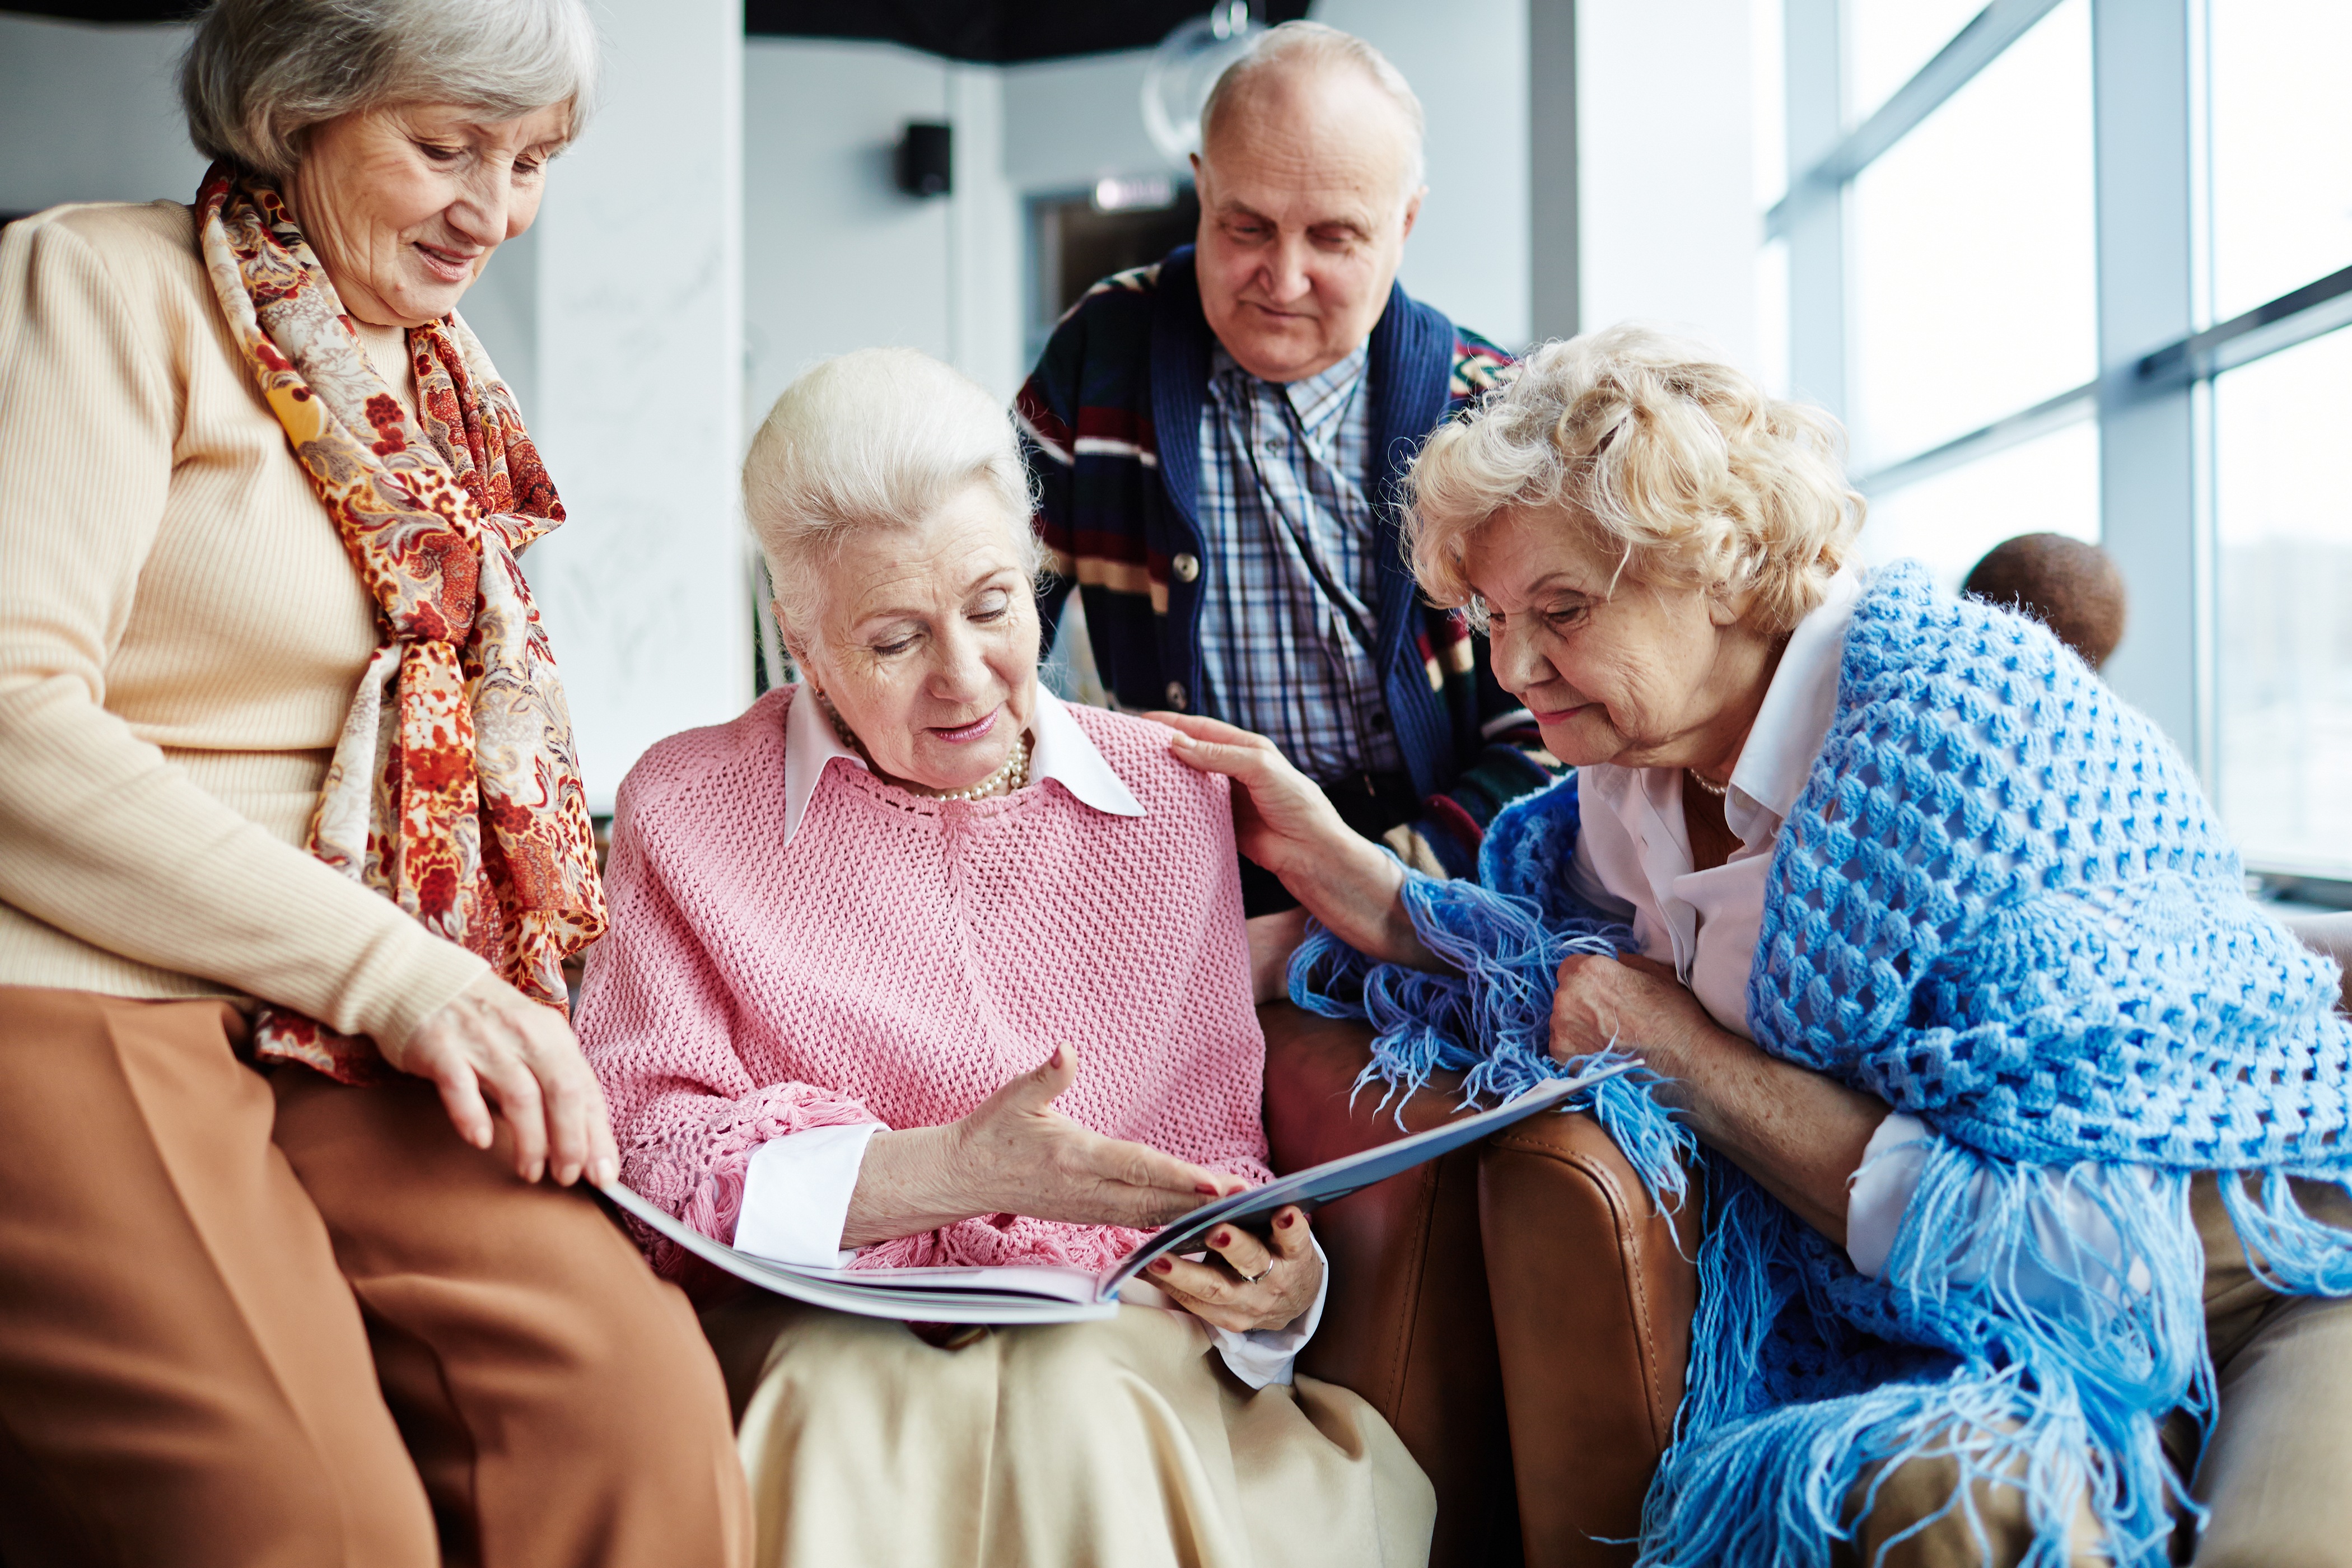 Fieldstone Recognizing Cognitive and Memory Impairments in Loved Ones